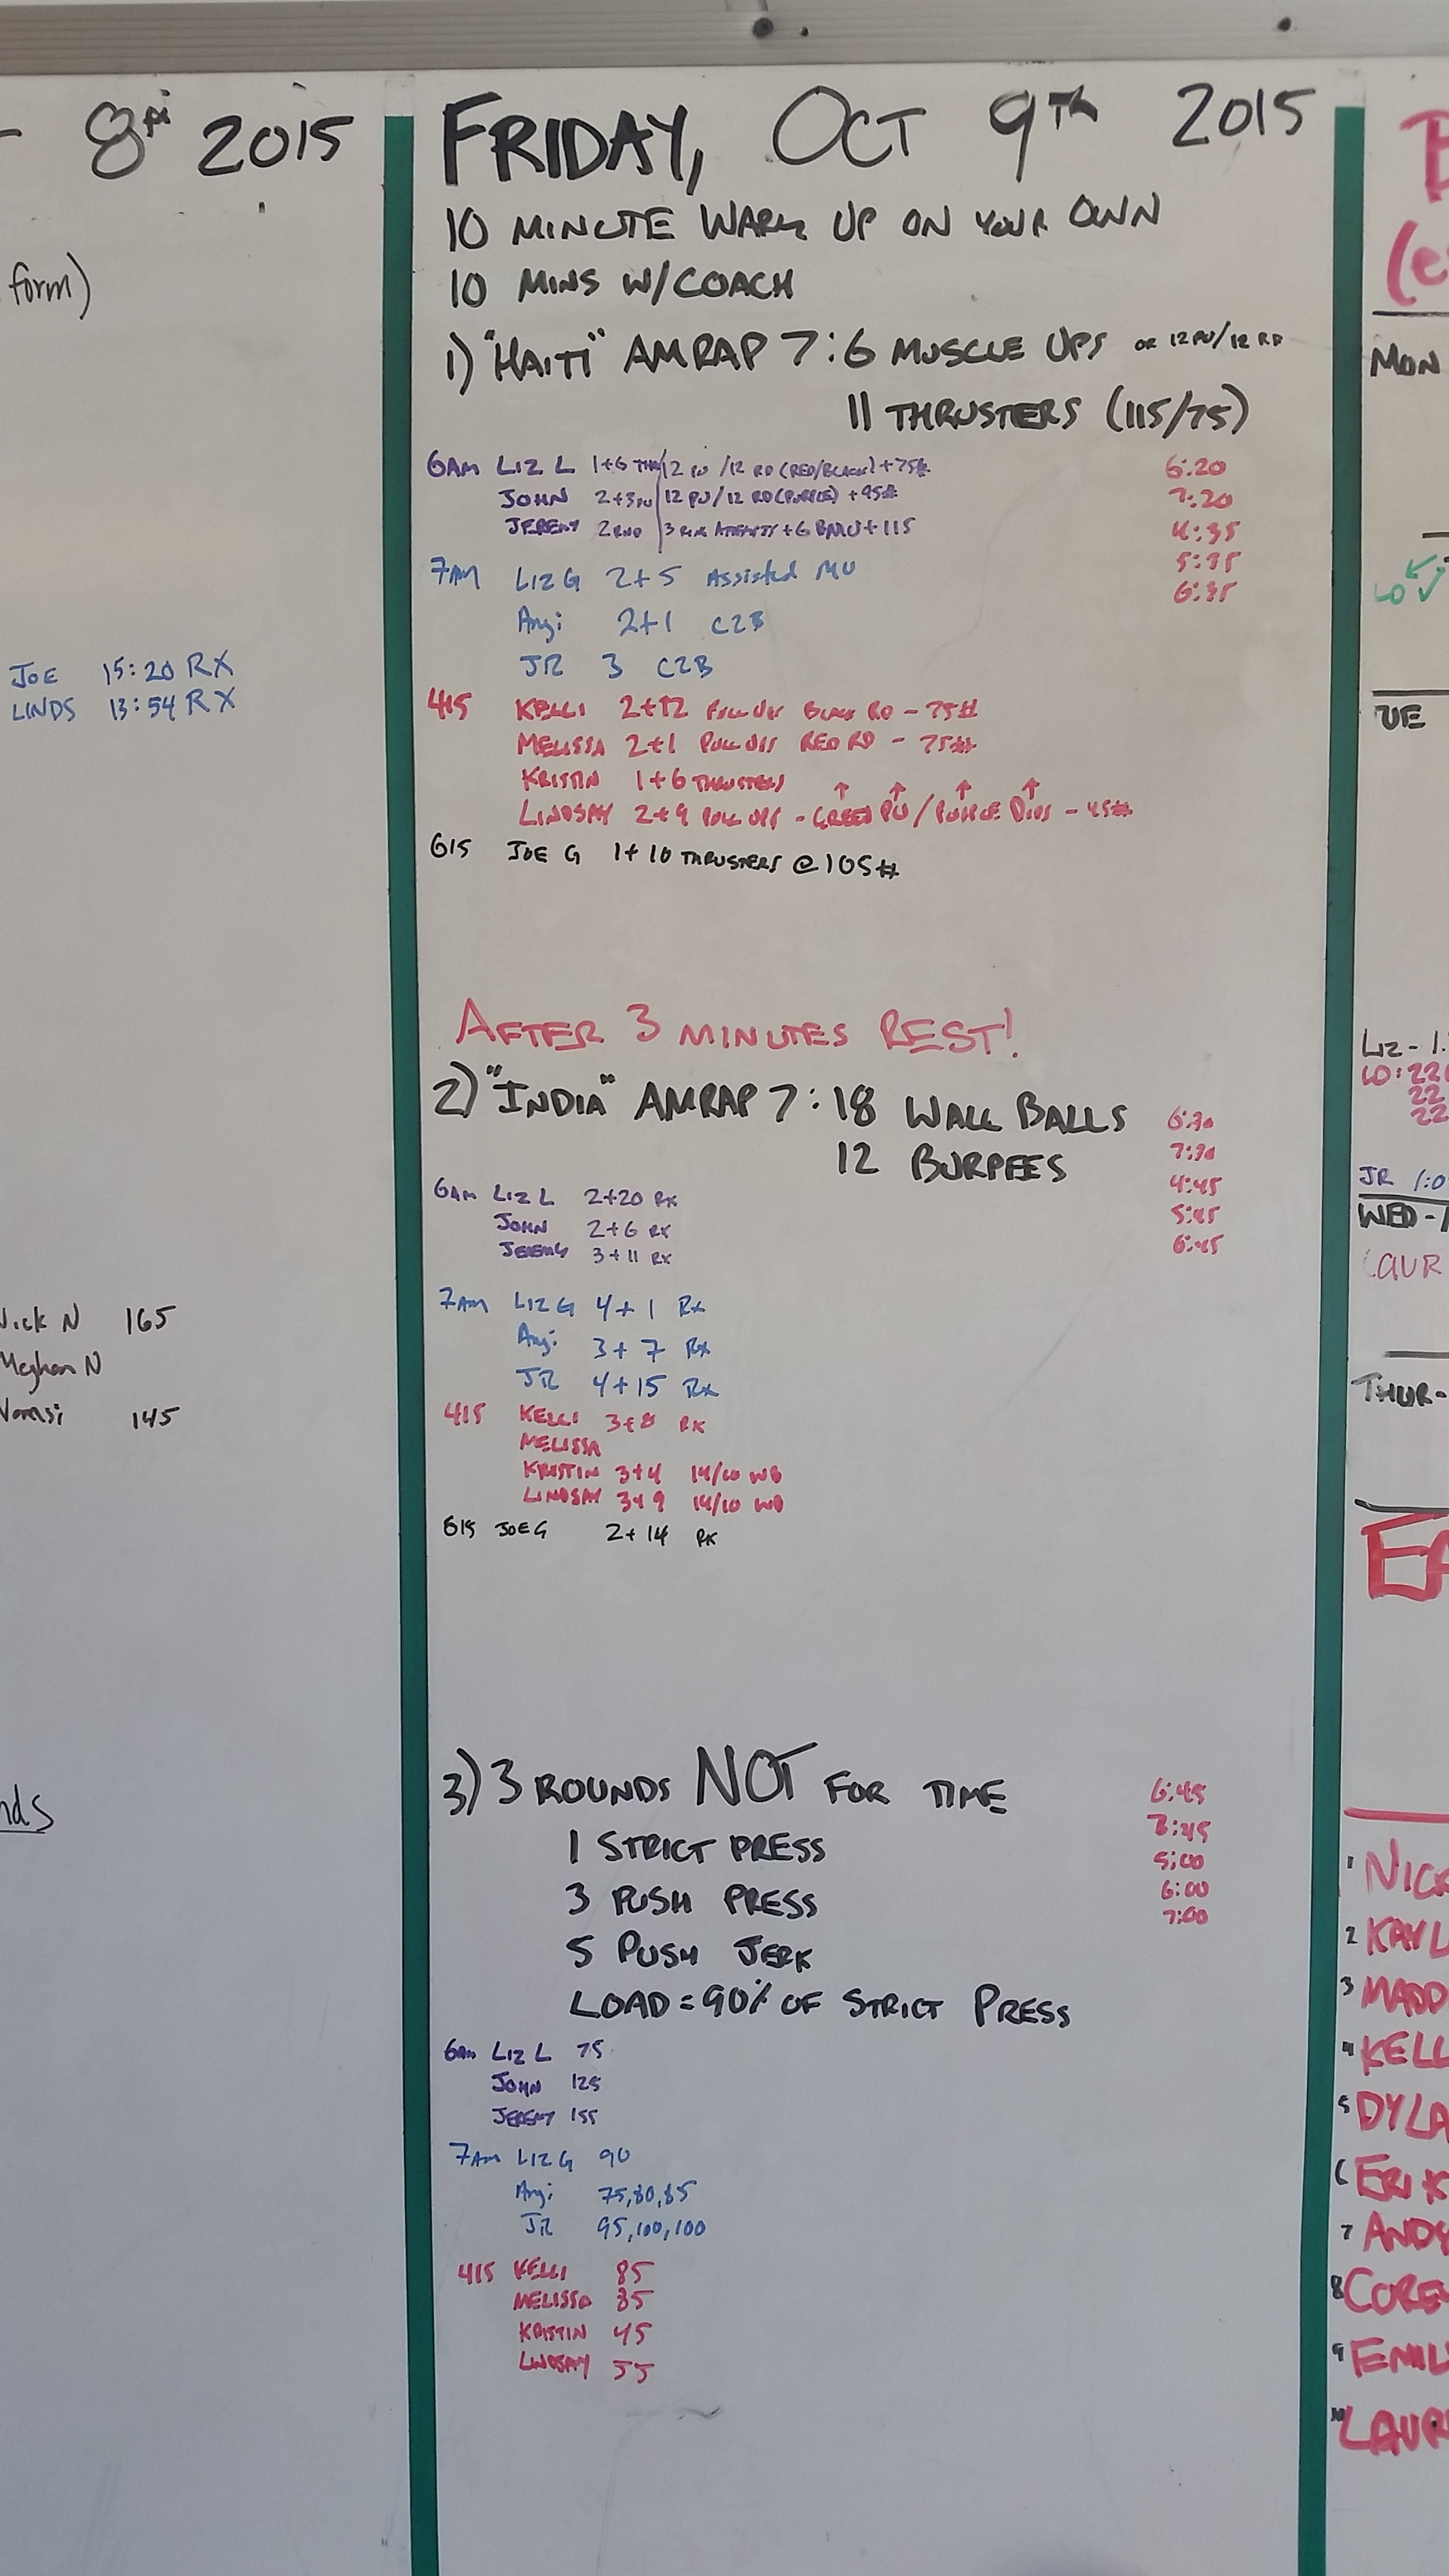 20151009 CrossFit Craft BENCHMARK Haiti Muscle Ups Thrusters India Wall Balls Burpees Strict Press Push Press Push Jerk